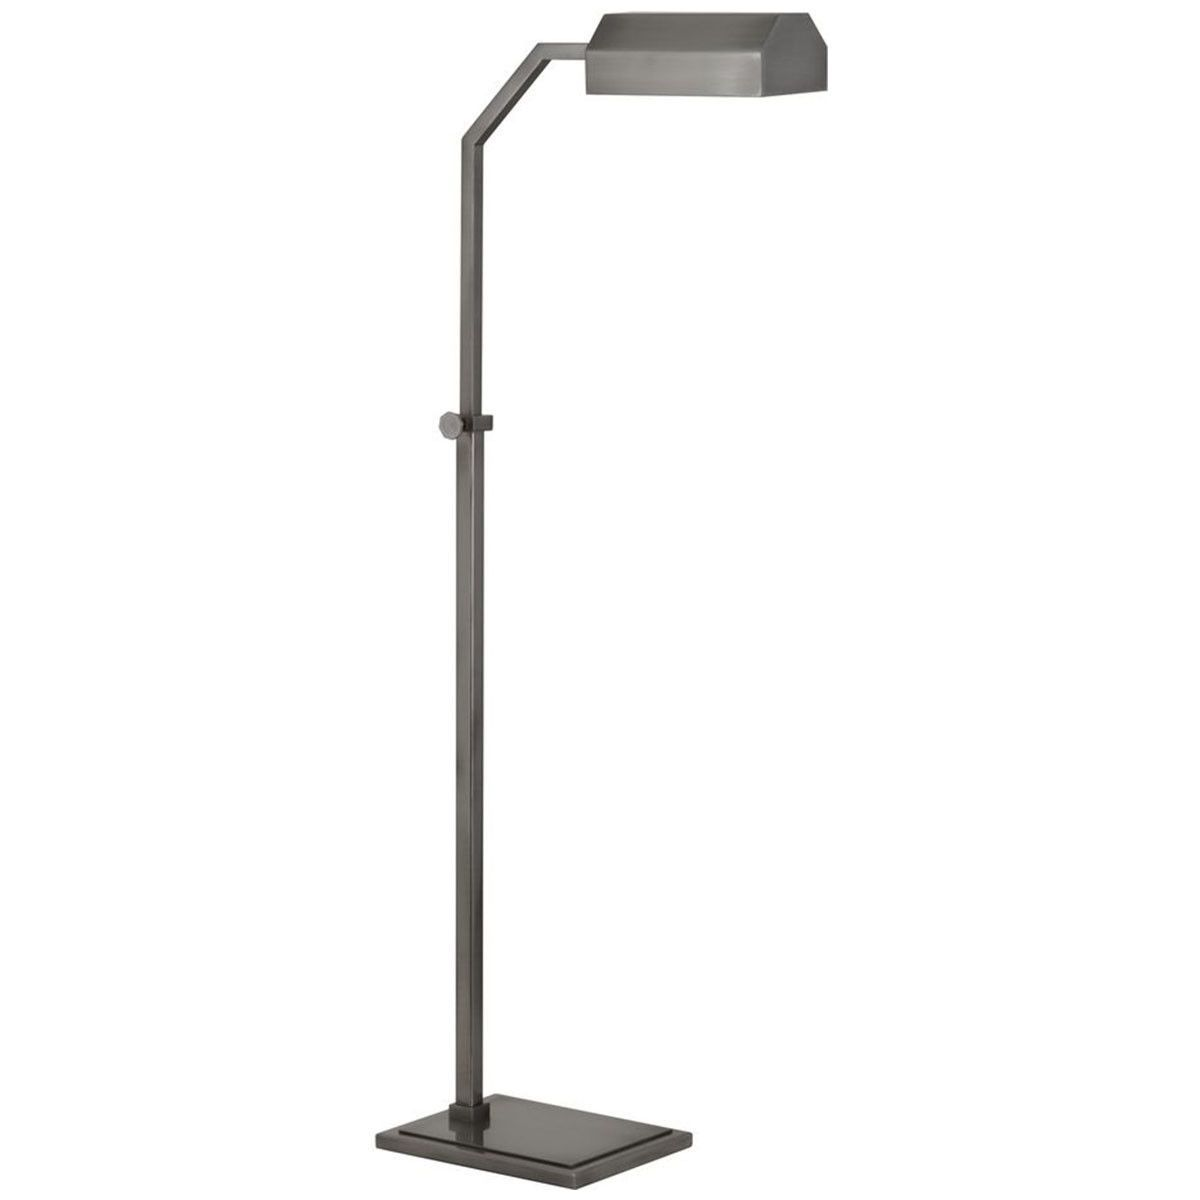 Robert abbey jackson floor lamp shop now on pinterest